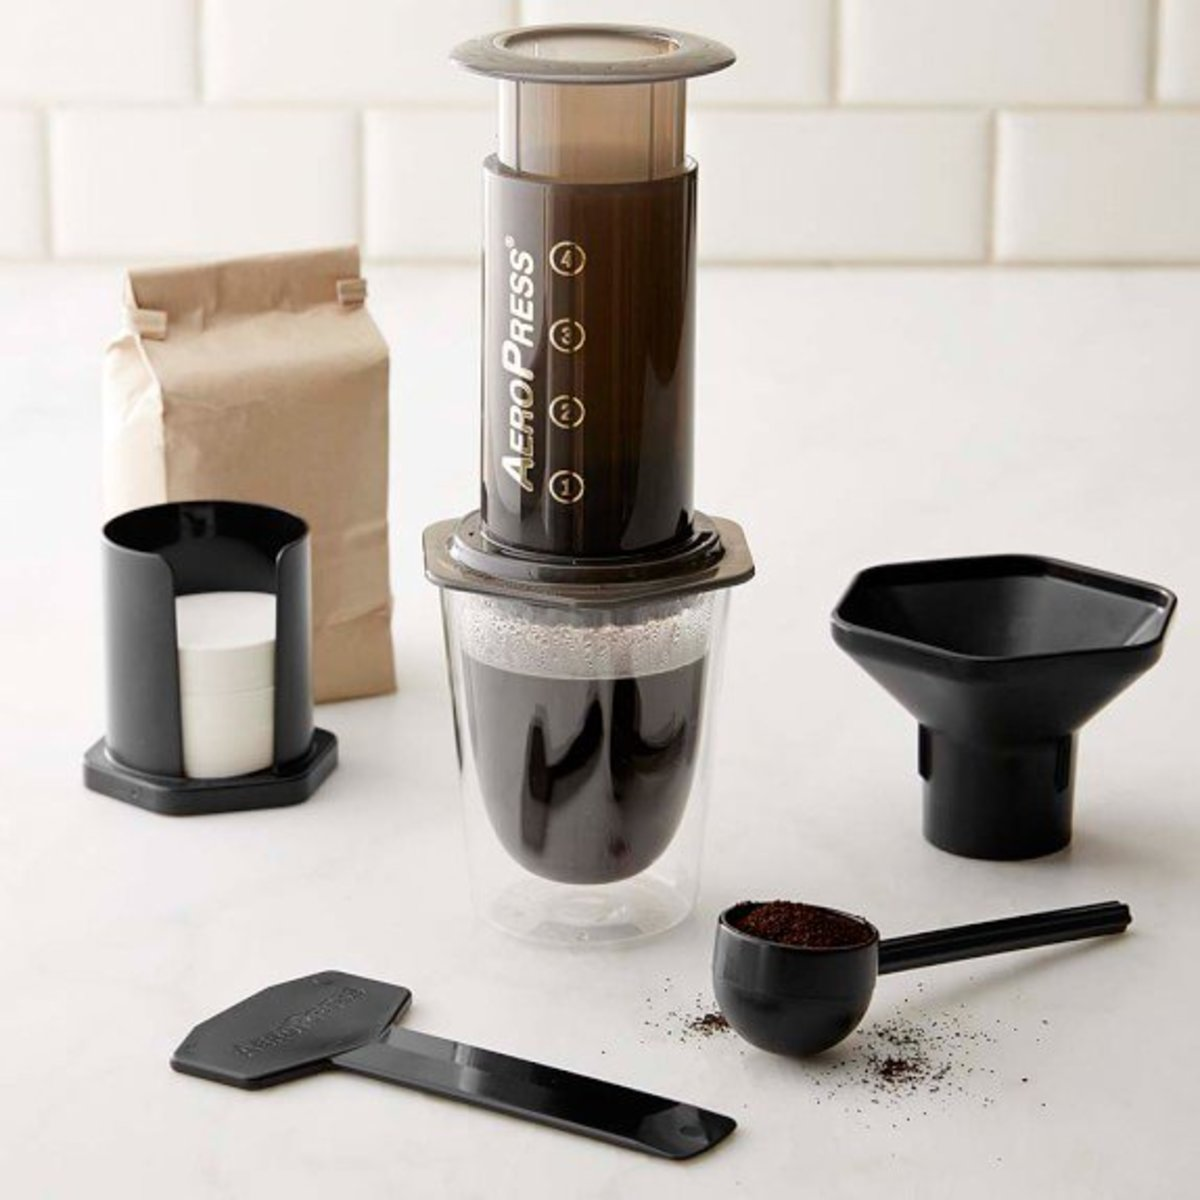 3 Alternative Coffee Brewing Methods Without a Pod in Sight